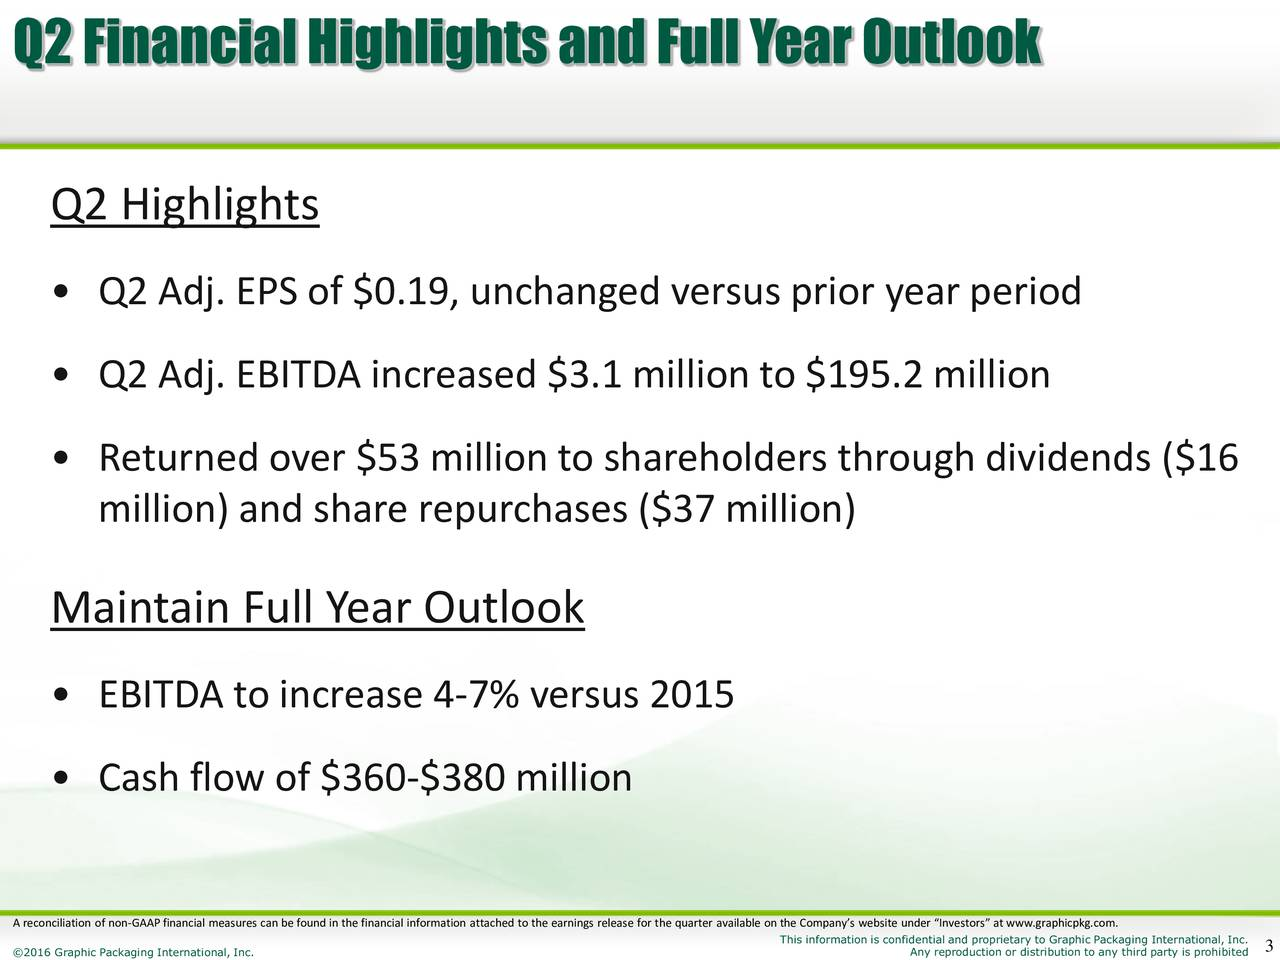 Q2 Highlights Q2 Adj. EPS of $0.19, unchanged versus prior year period Q2 Adj. EBITDA increased $3.1 million to $195.2 million Returned over $53 million to shareholders through dividends ($16 million) and share repurchases ($37 million) Maintain Full Year Outlook EBITDA to increase 4-7% versus 2015 Cash flow of $360-$380 million A reconciliation of non-GAAP financial measures can be found in the financial information attached to the earnings release for the quarter available on the Companys website under Investors at www.graphicpkg.com.